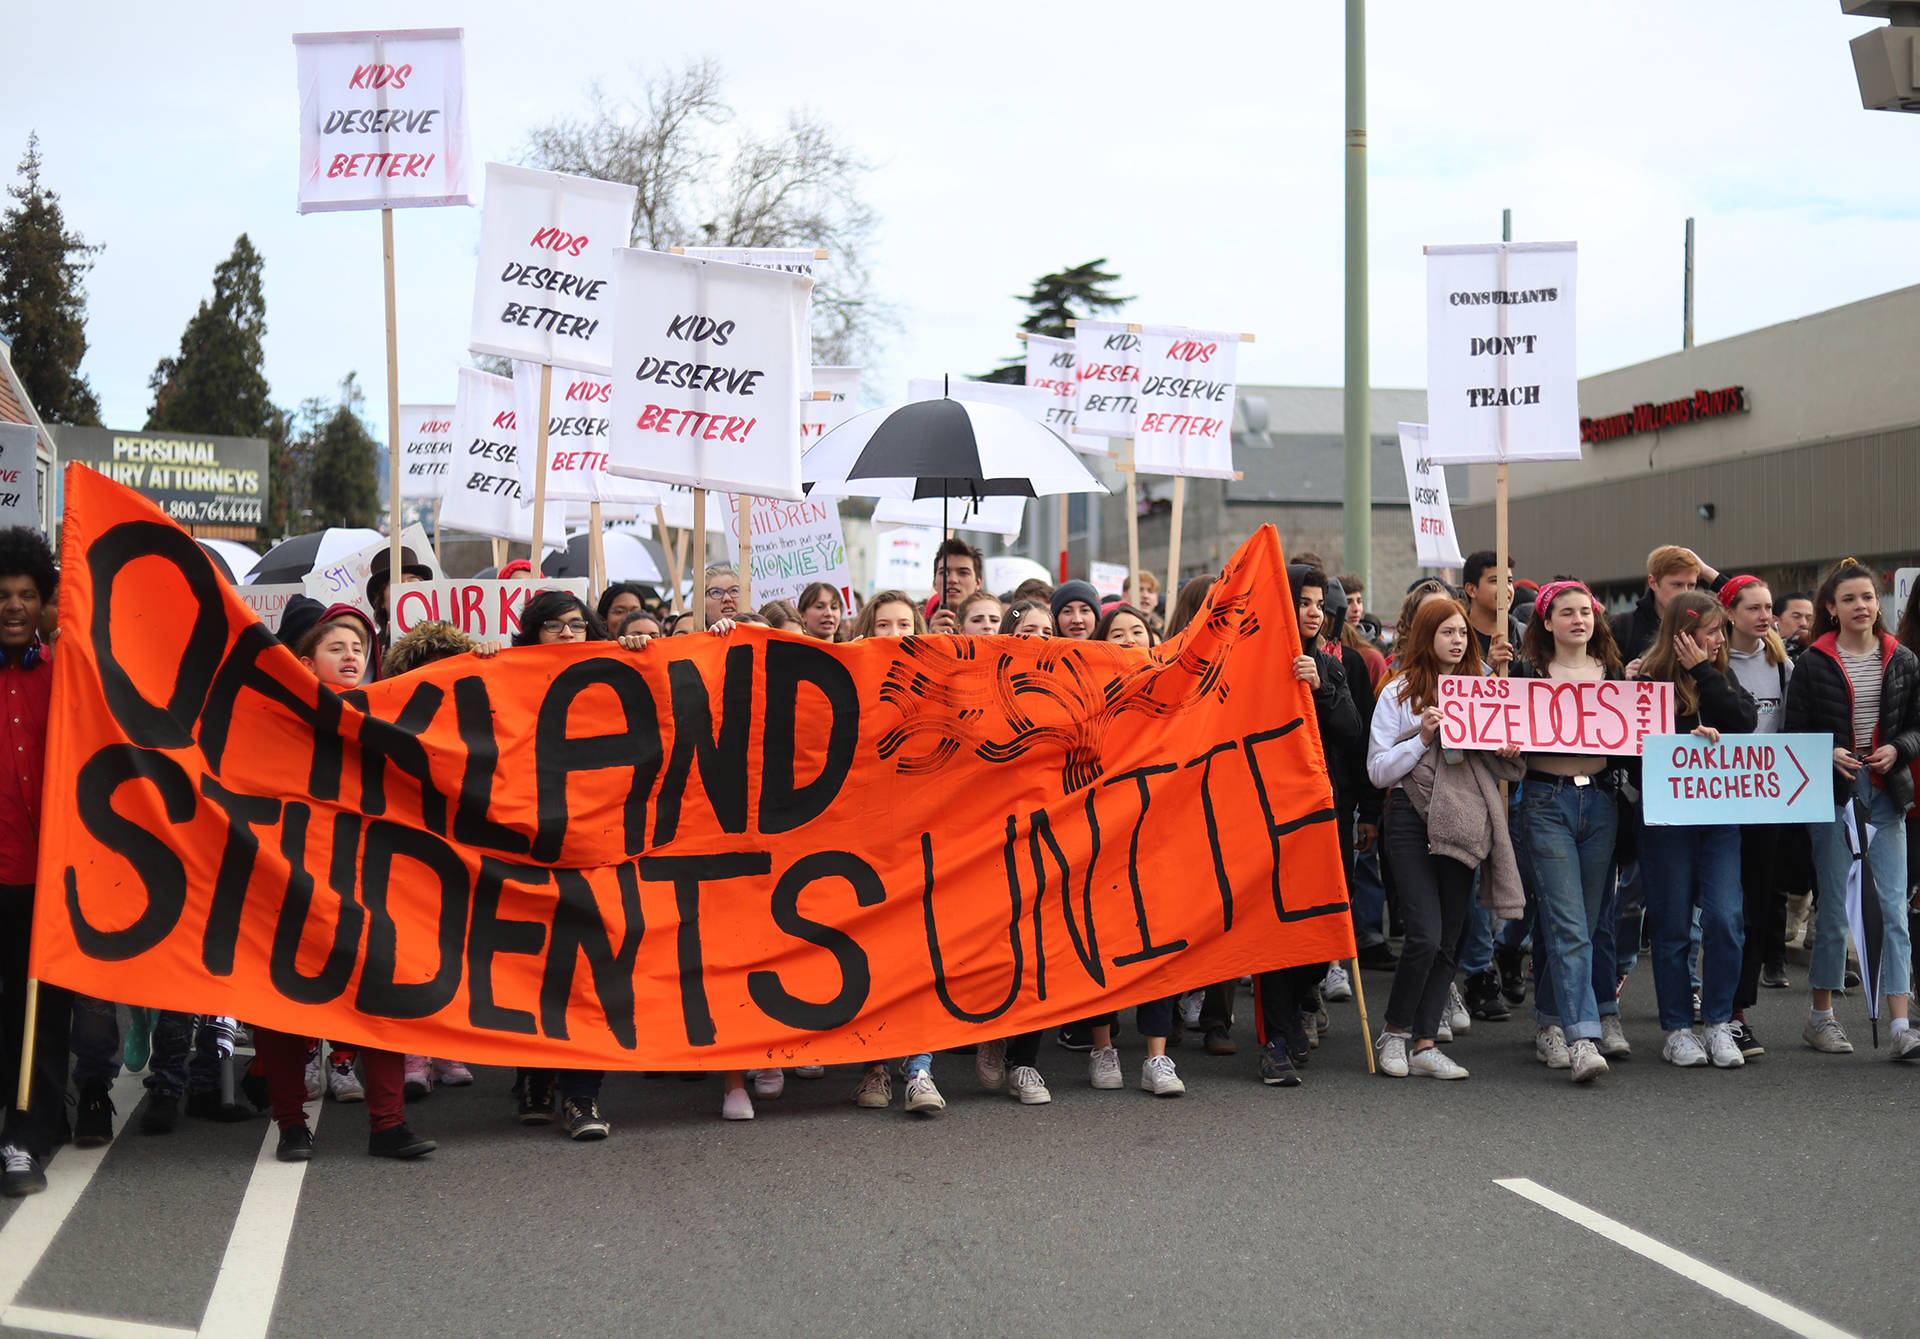 Hundreds of students from high schools across Oakland rallied in support of their teachers, marching from Oakland Tech to the Oakland Unified School District's downtown  headquarters on Feb. 8, 2019. Lindsey Moore/KQED